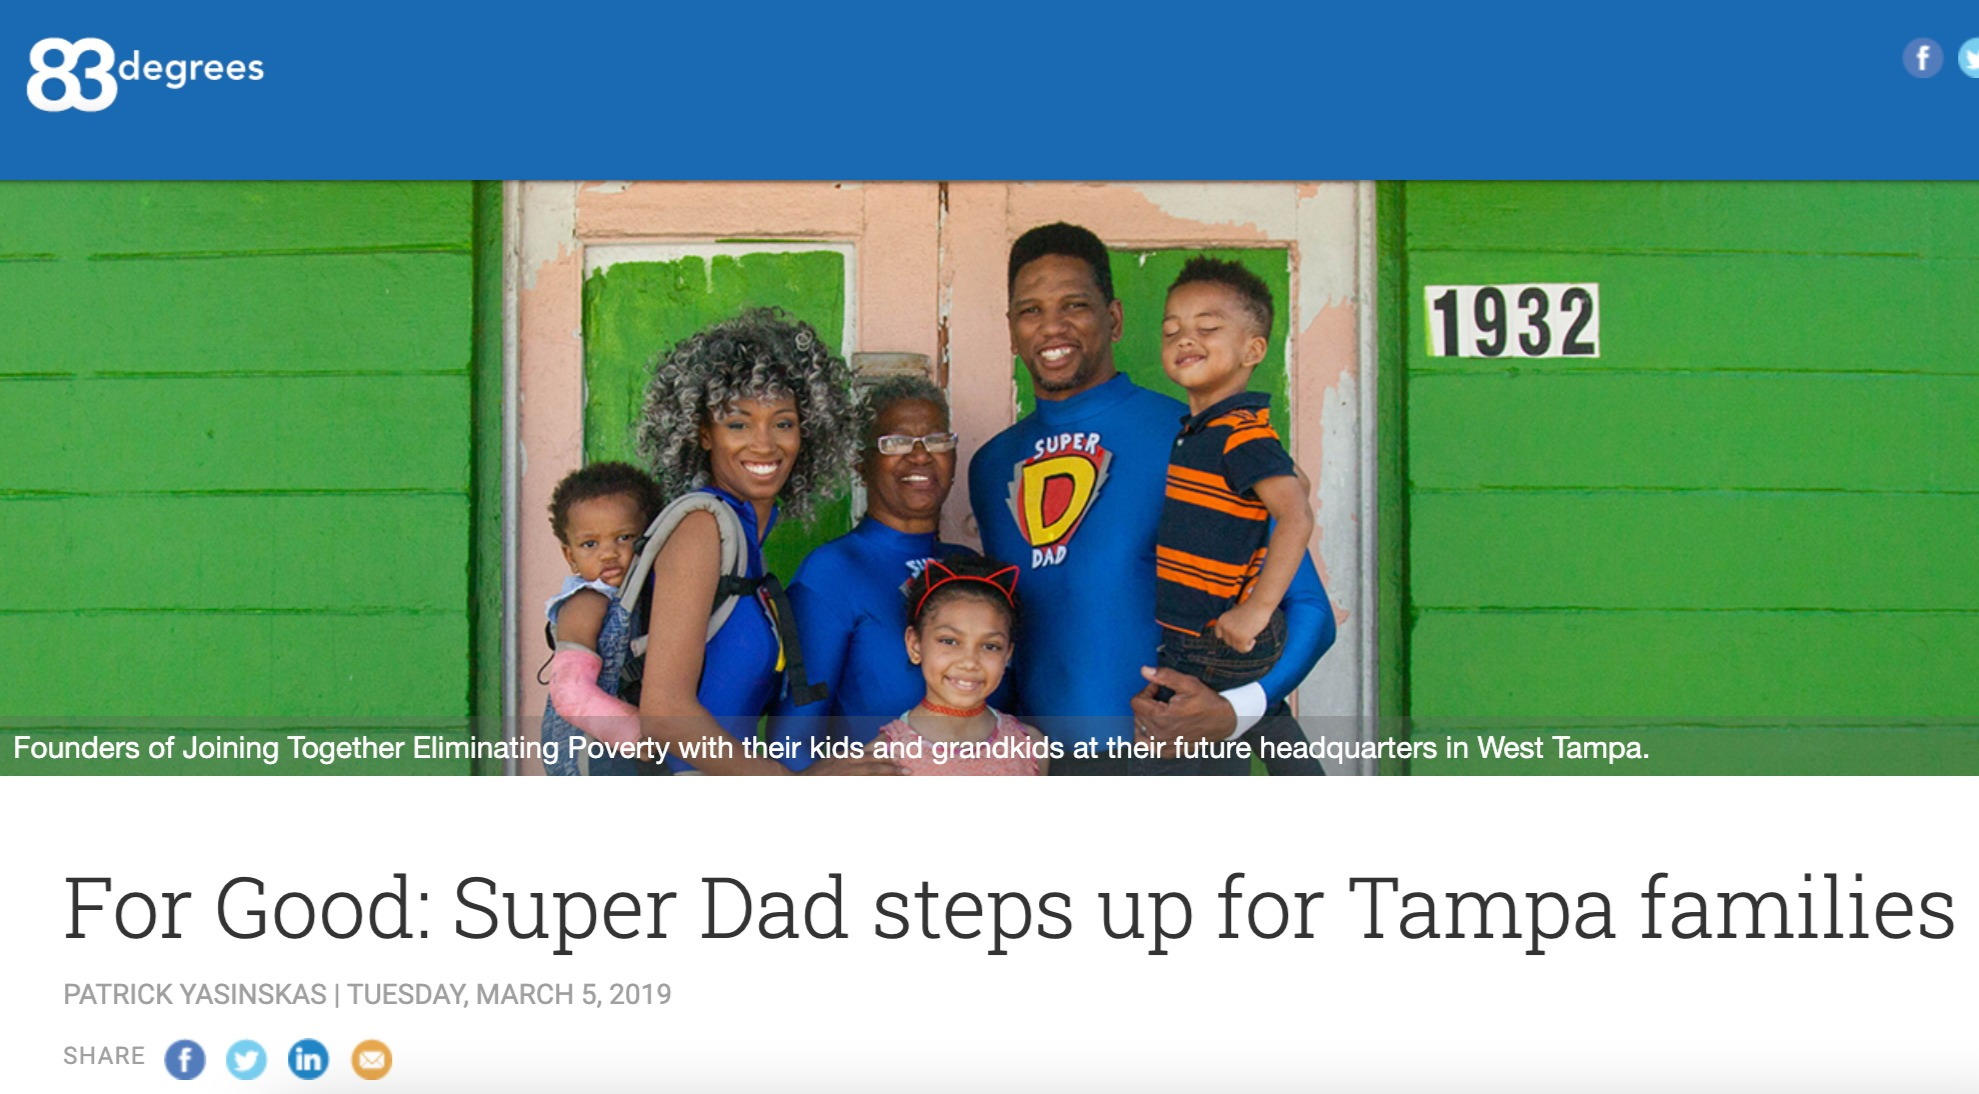 SuperDad steps up for Tampa families